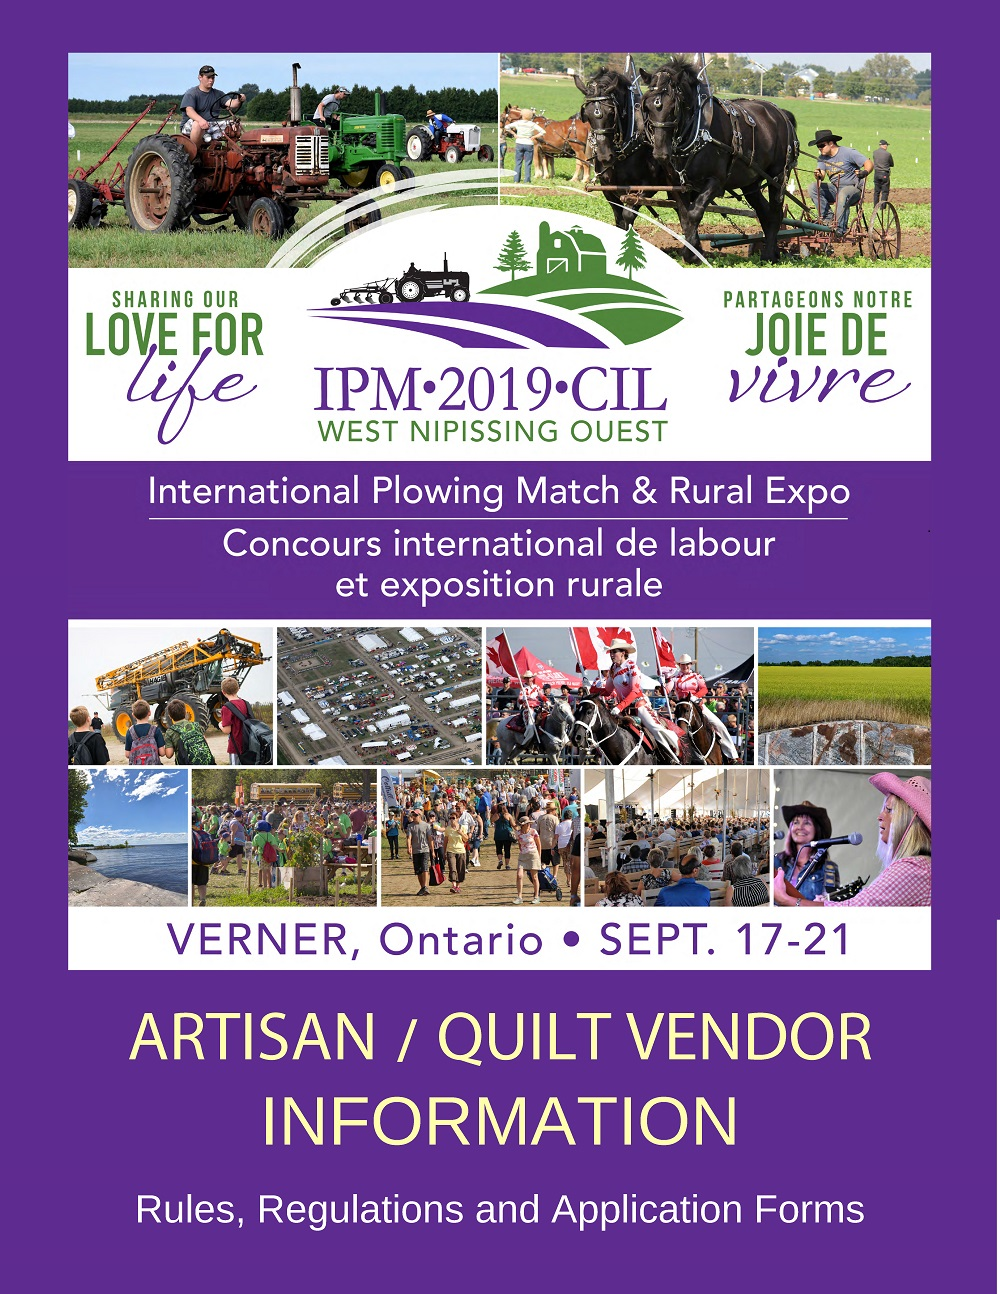 Artisan and Quilt Vendor Information